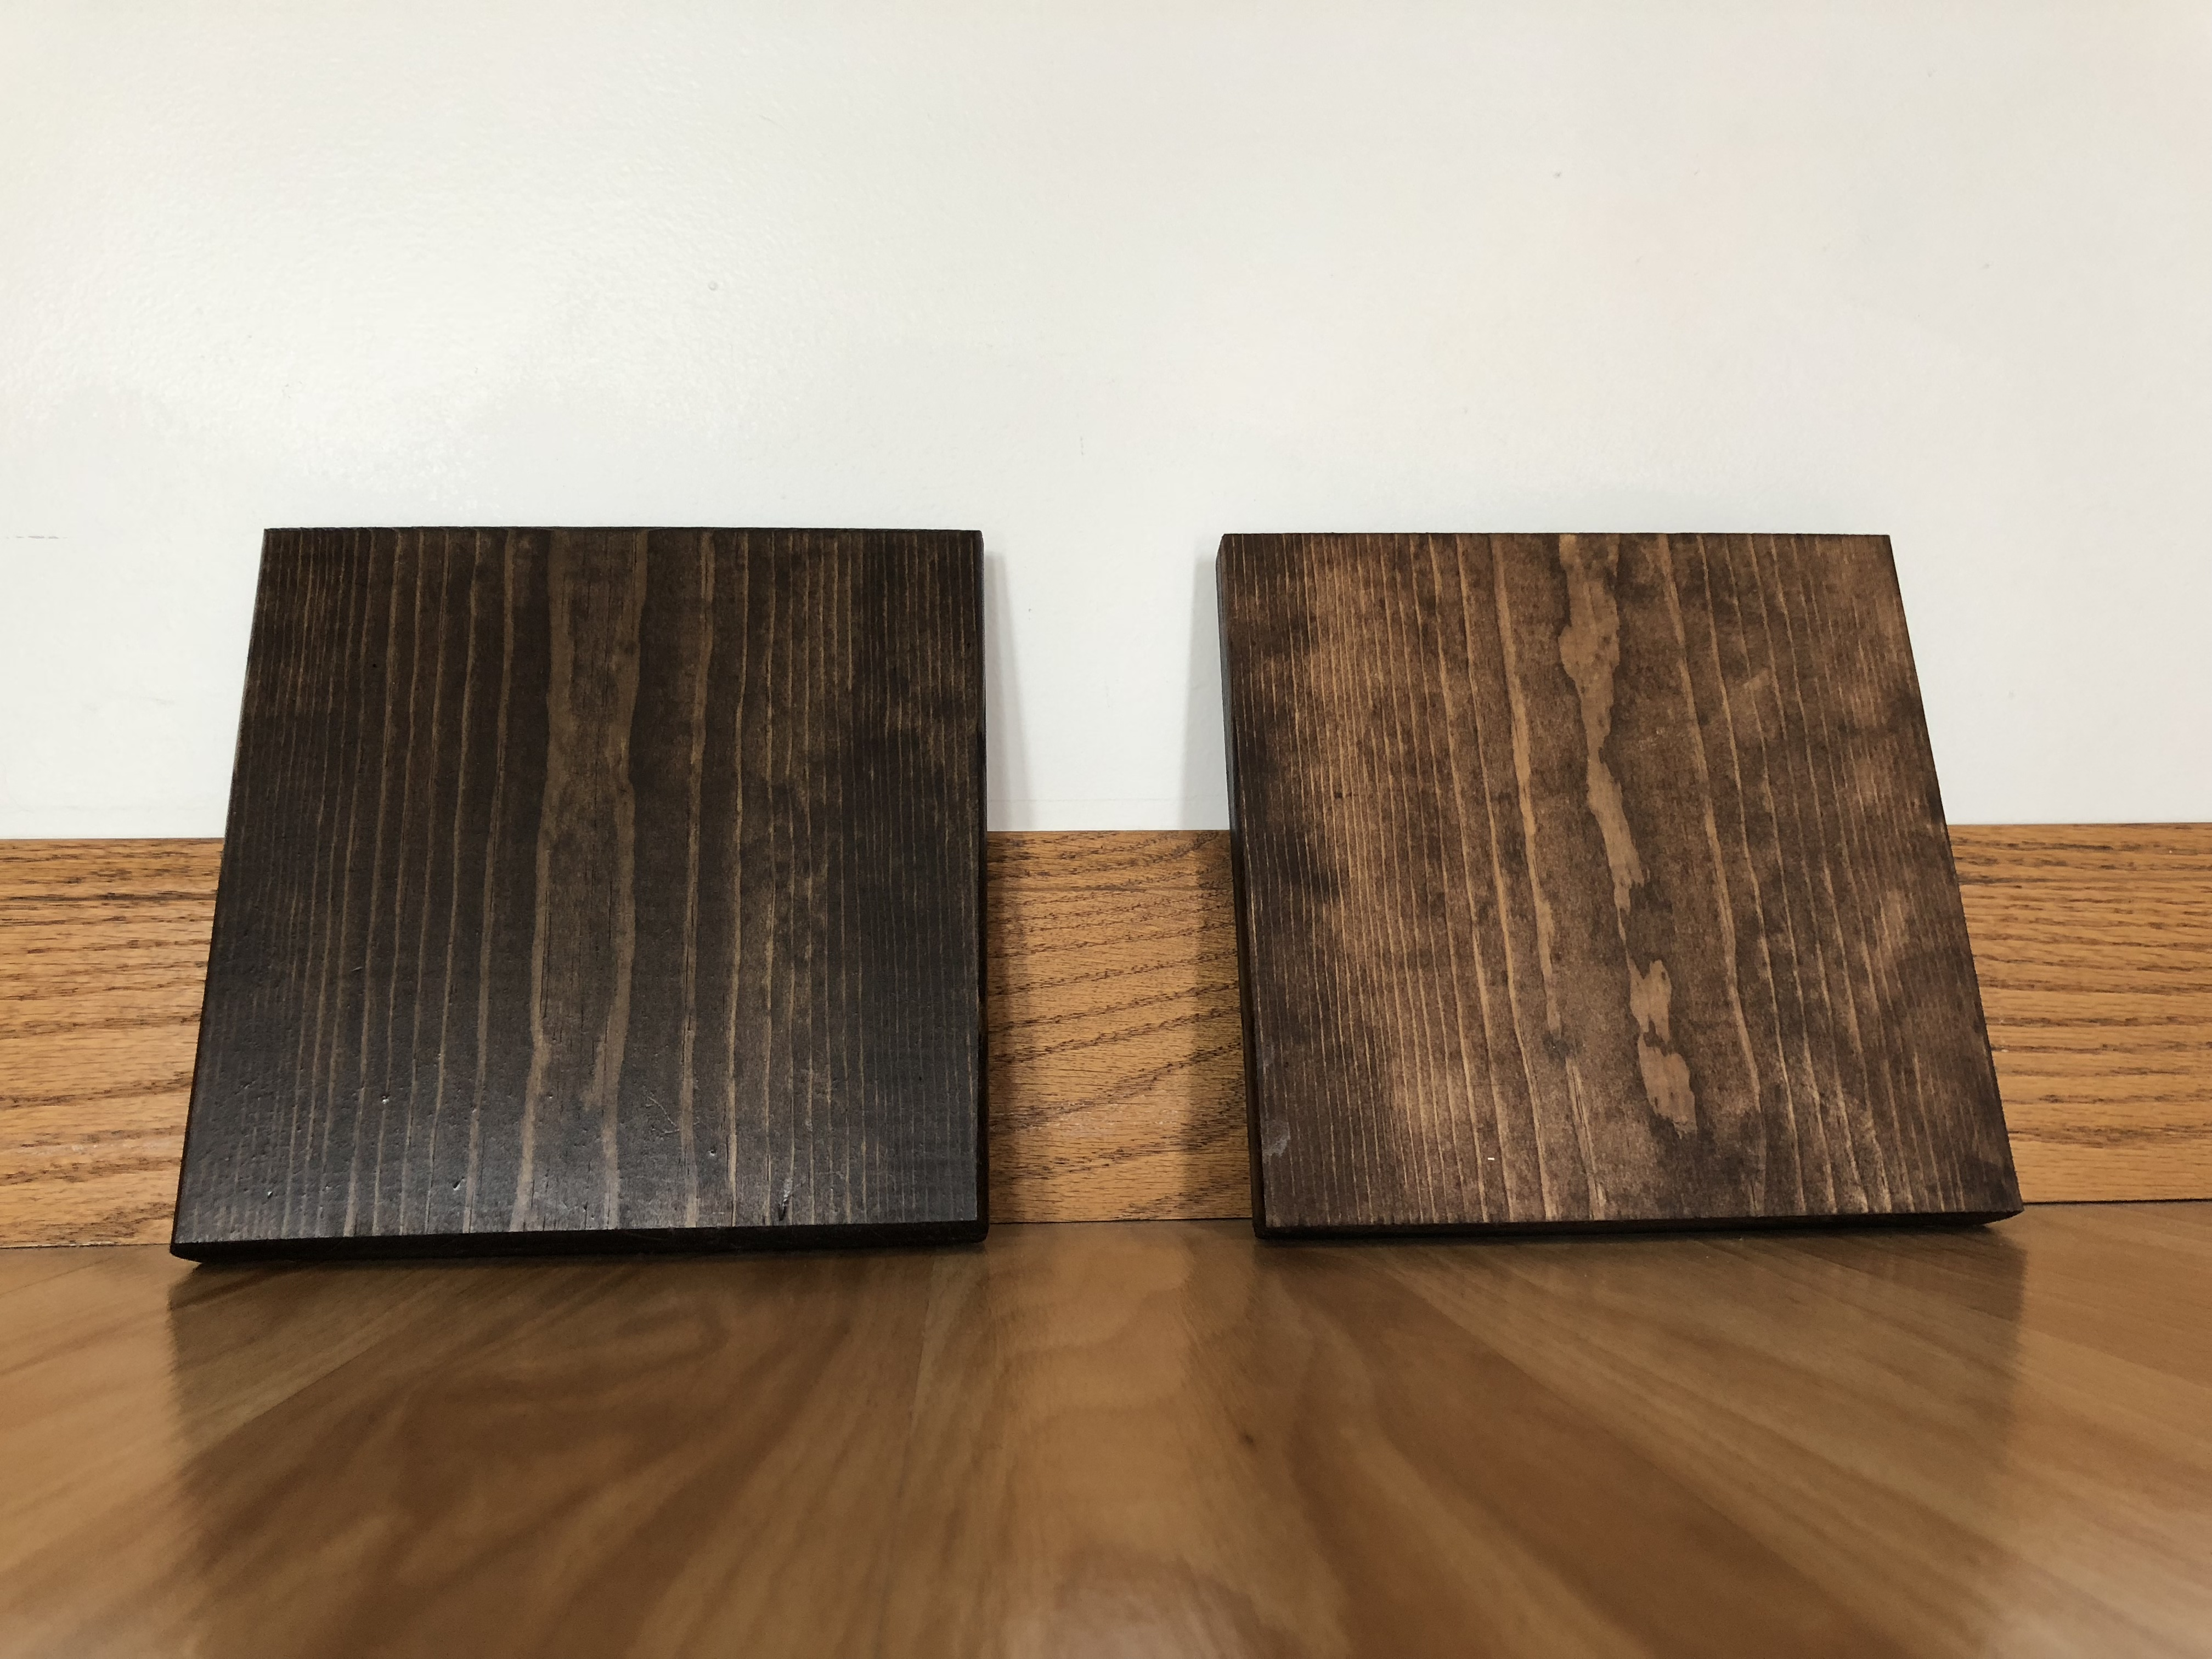 Stained Wooden Blocks For Table Centerpieces